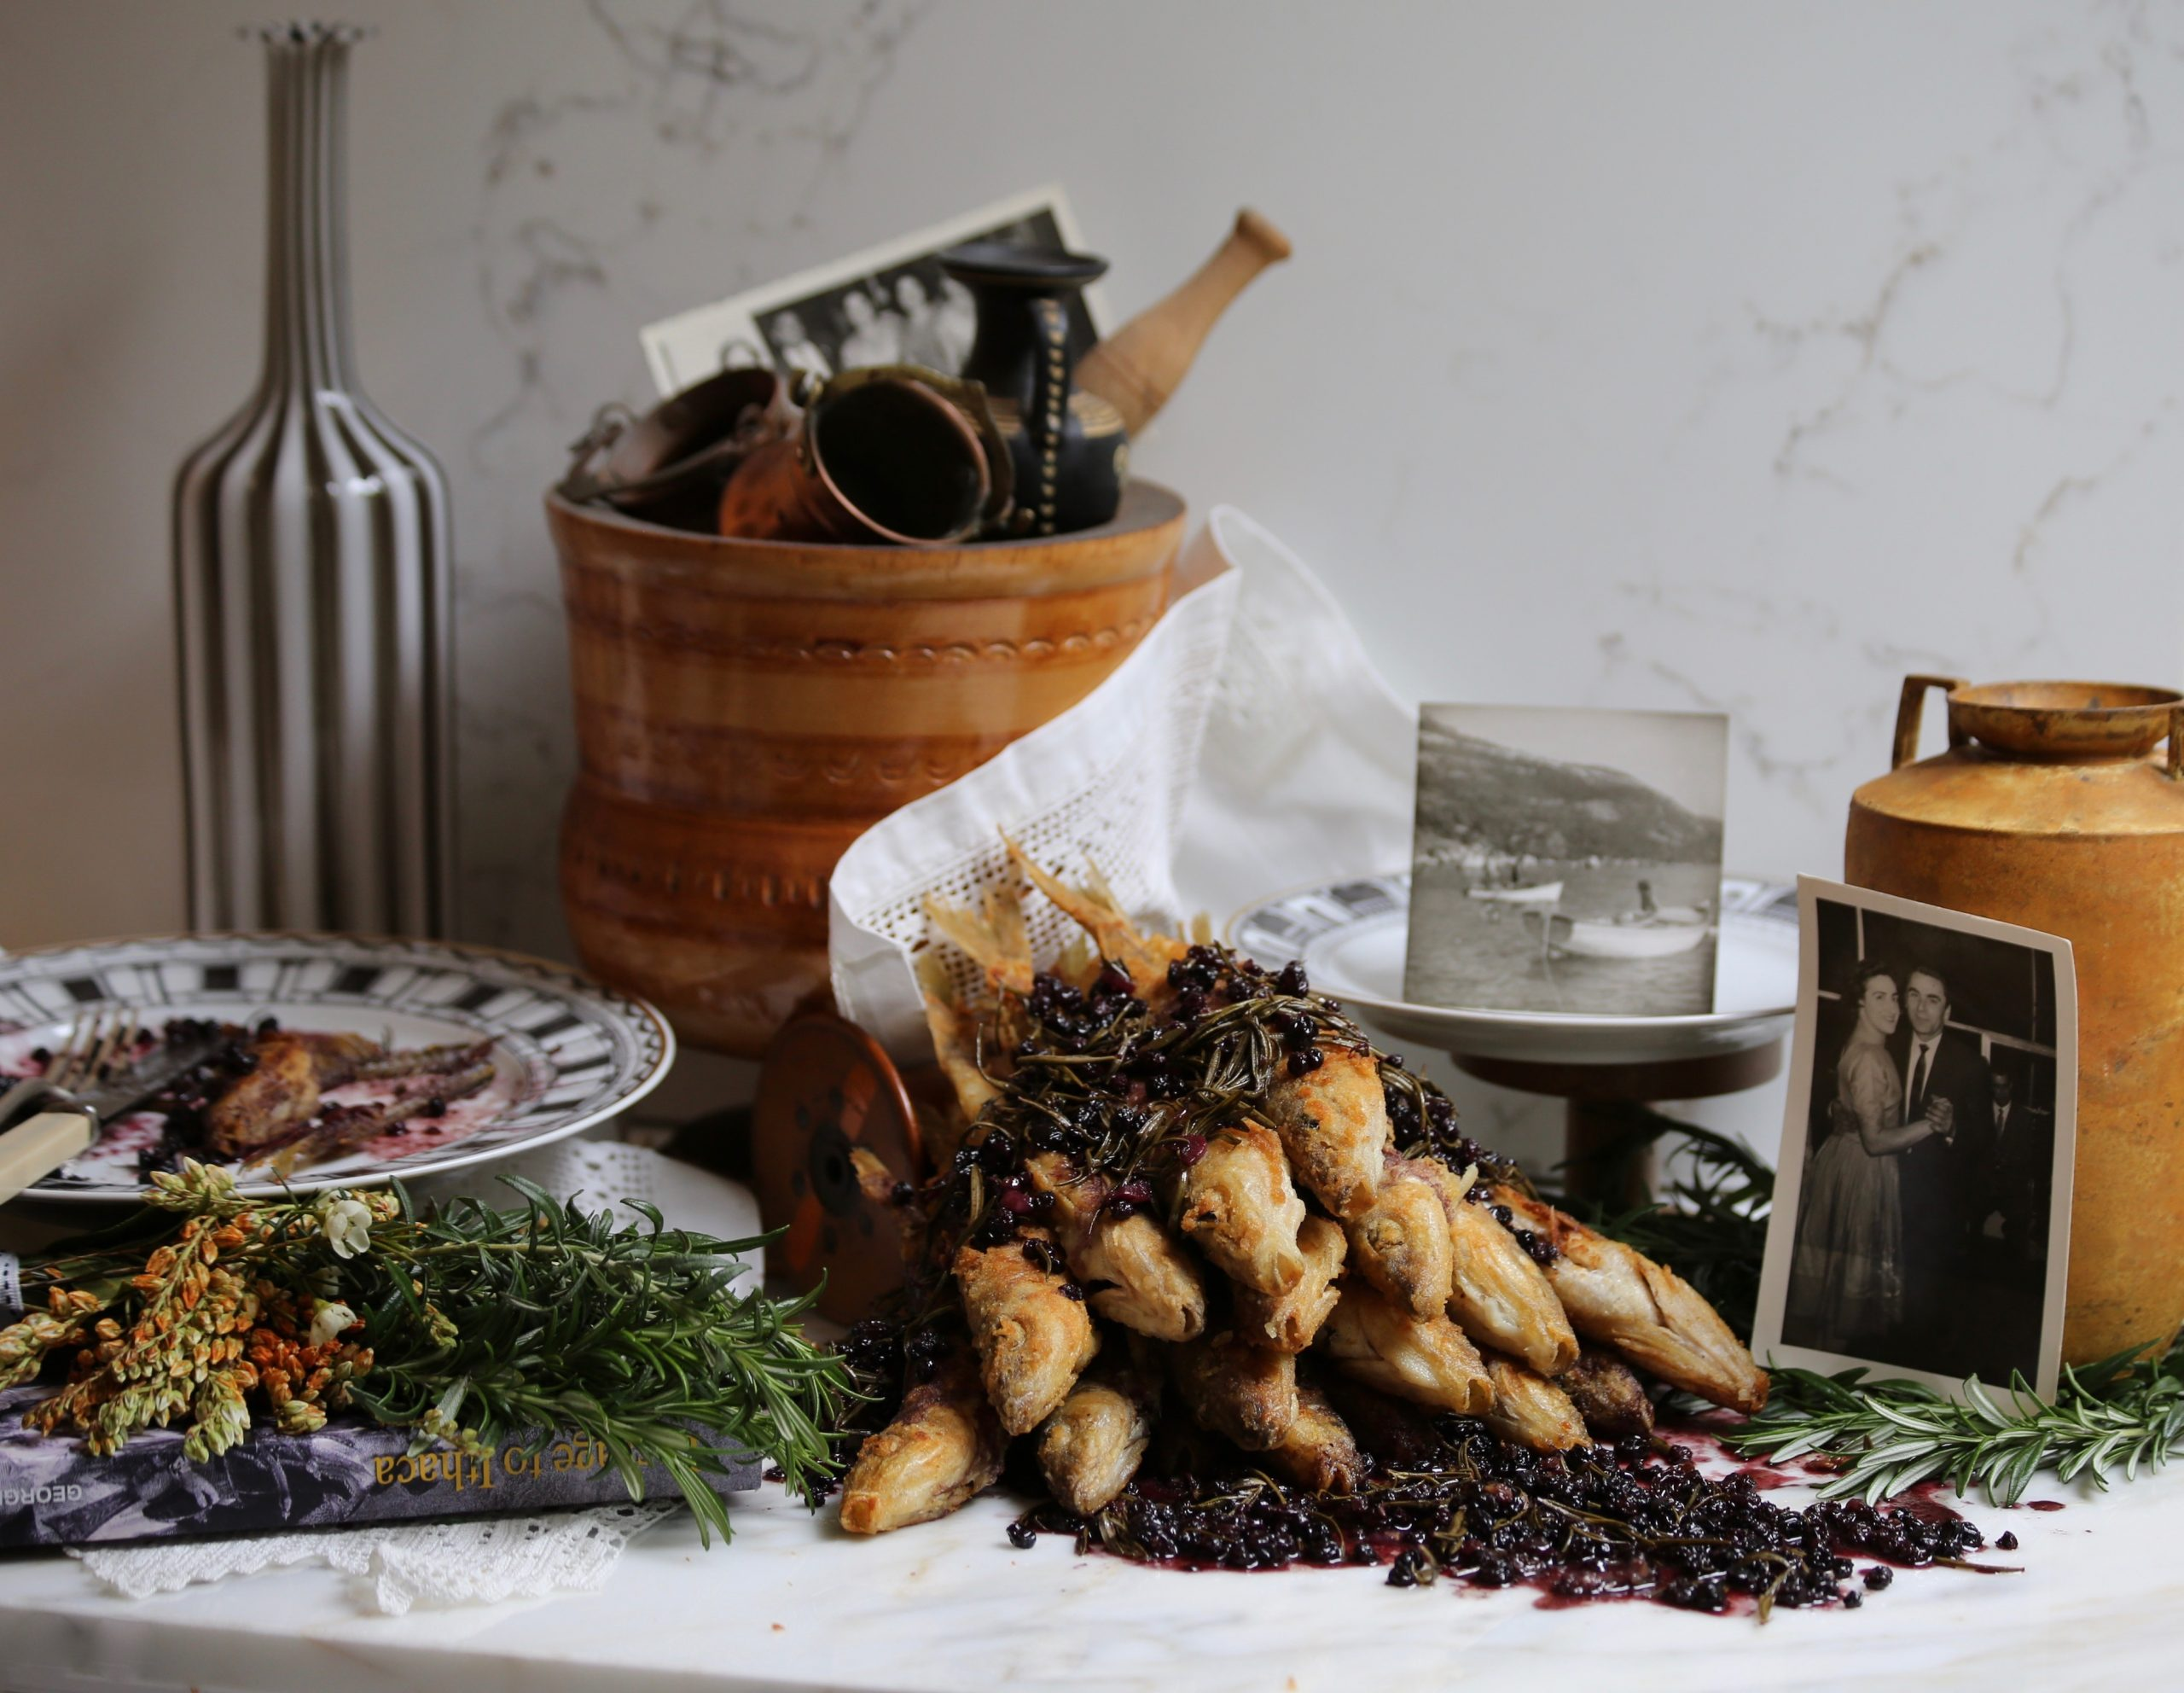 table with a pile neatly placed ithican savoro fish adorned with black berries next to various artefacts and photographs